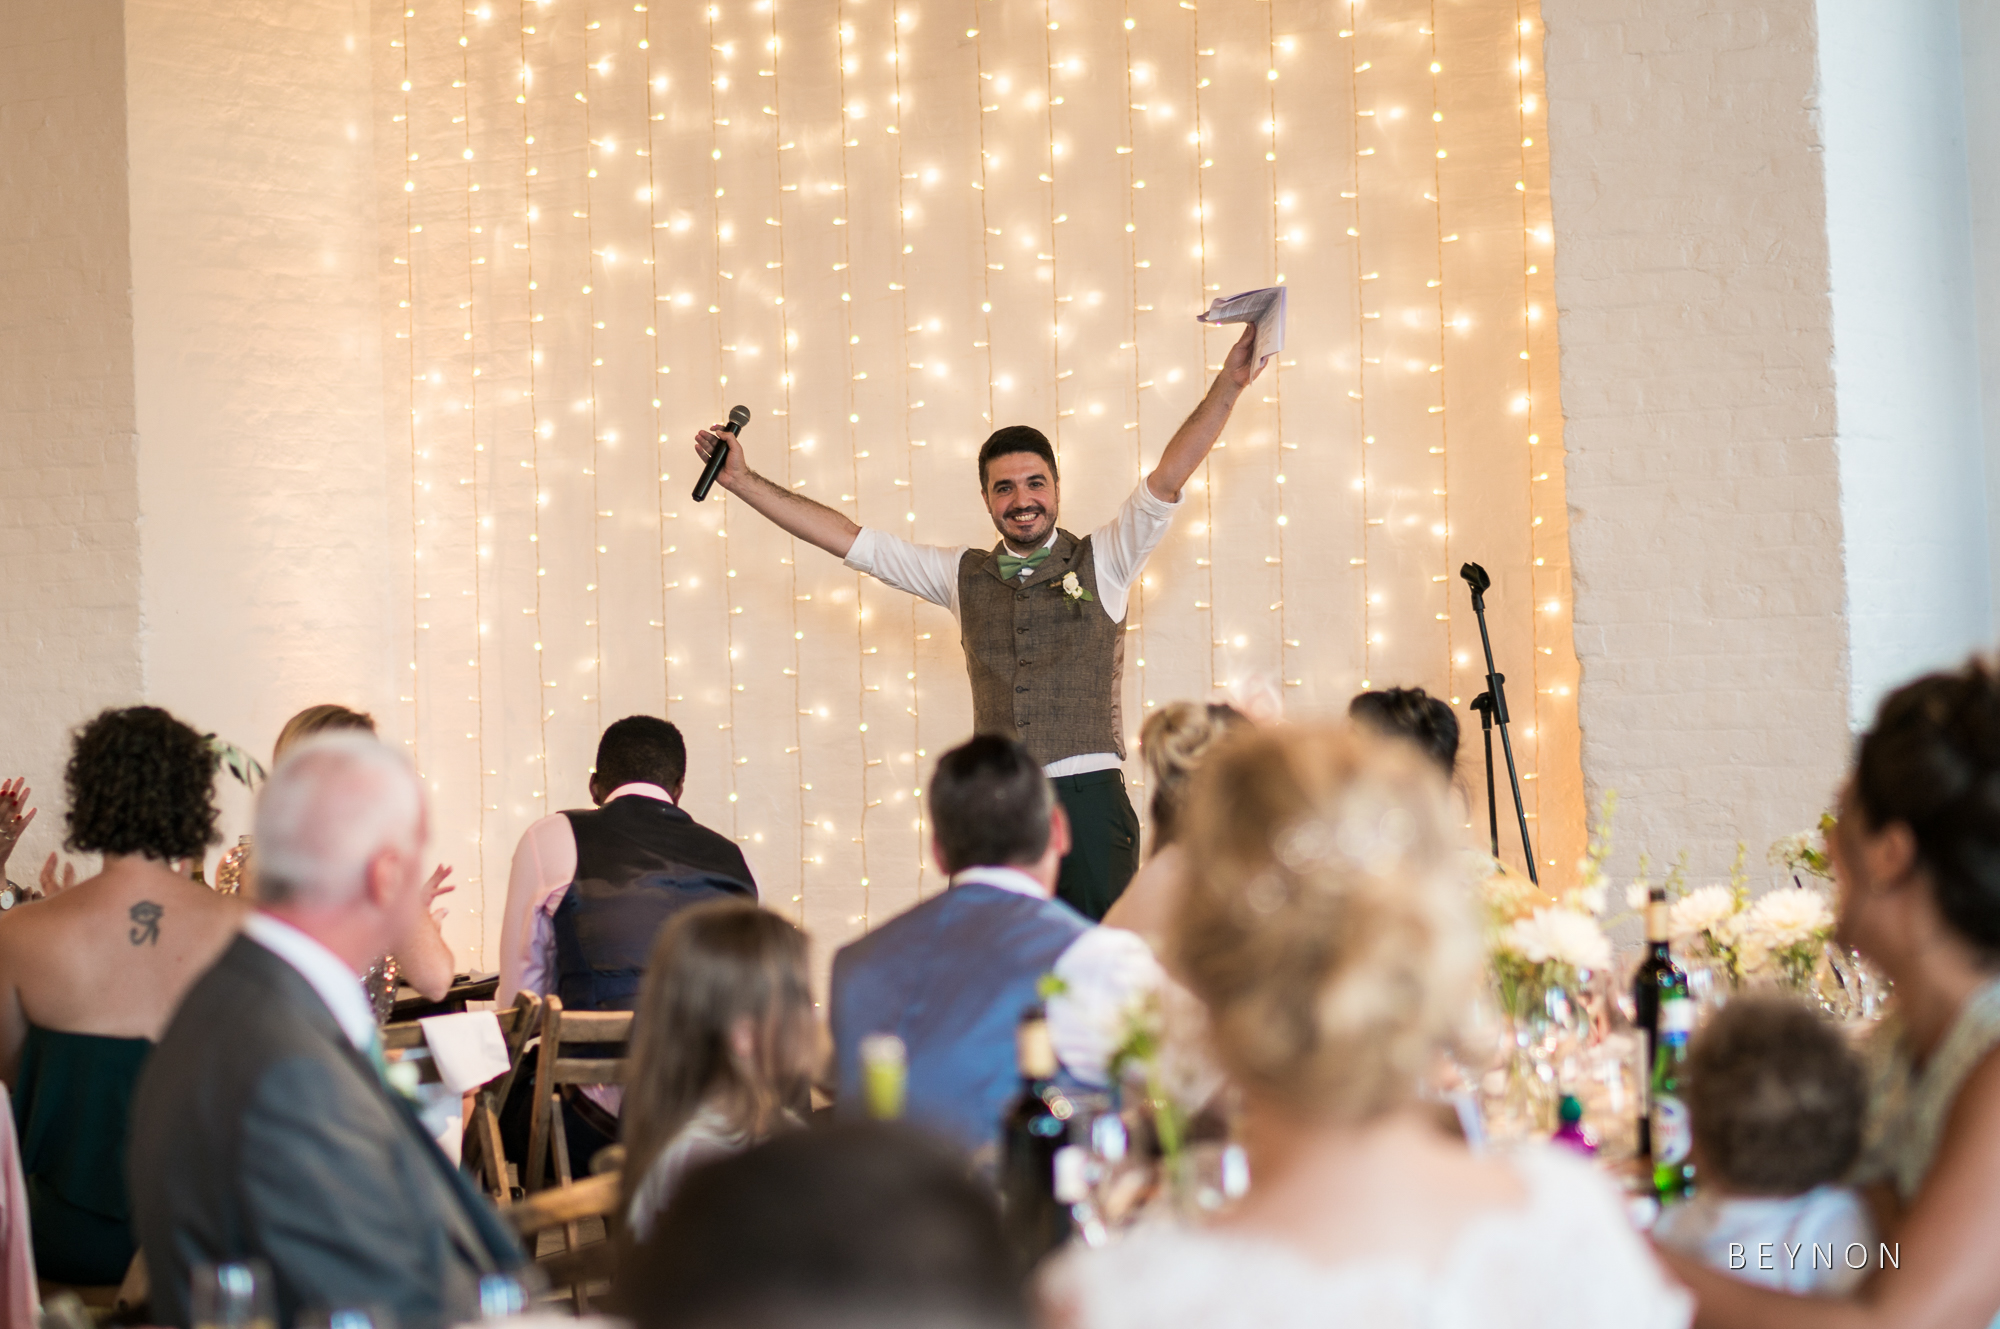 Groom is happy to finish his speech